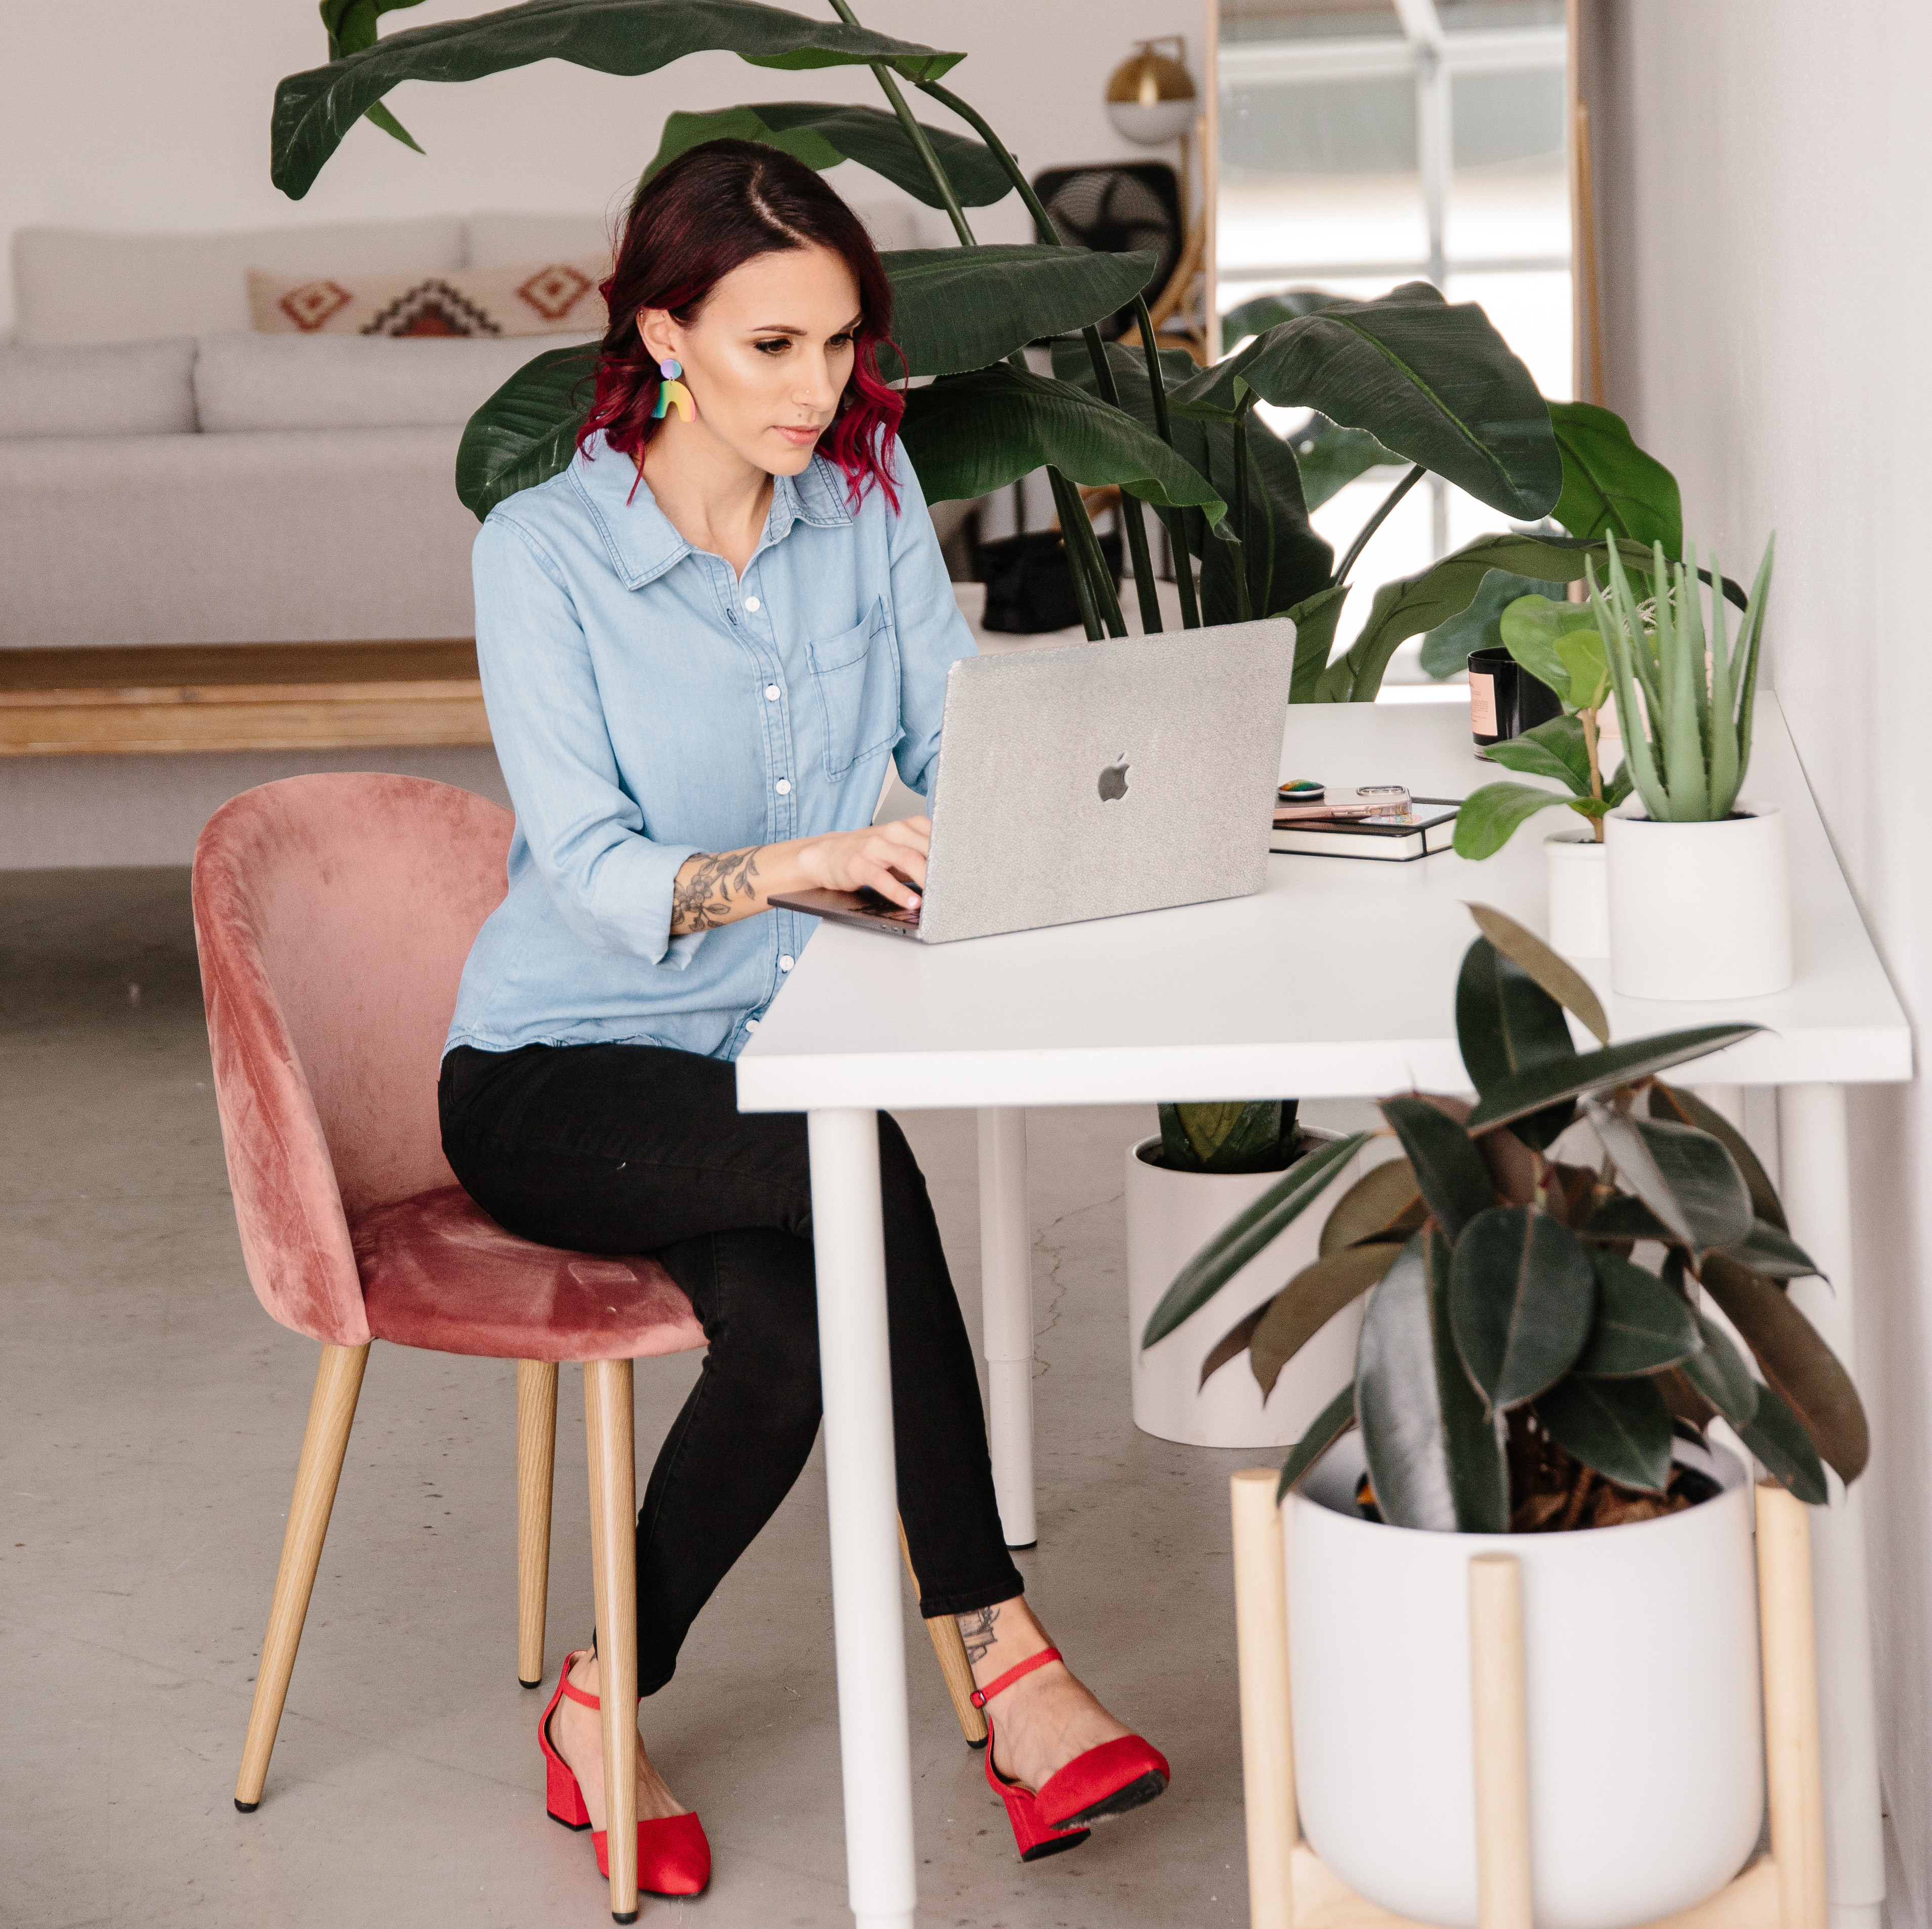 Shohreh sits in a blush-colored chair working at her laptop wearing bright red shoes, black pants, and a  light-colored chambray shirt